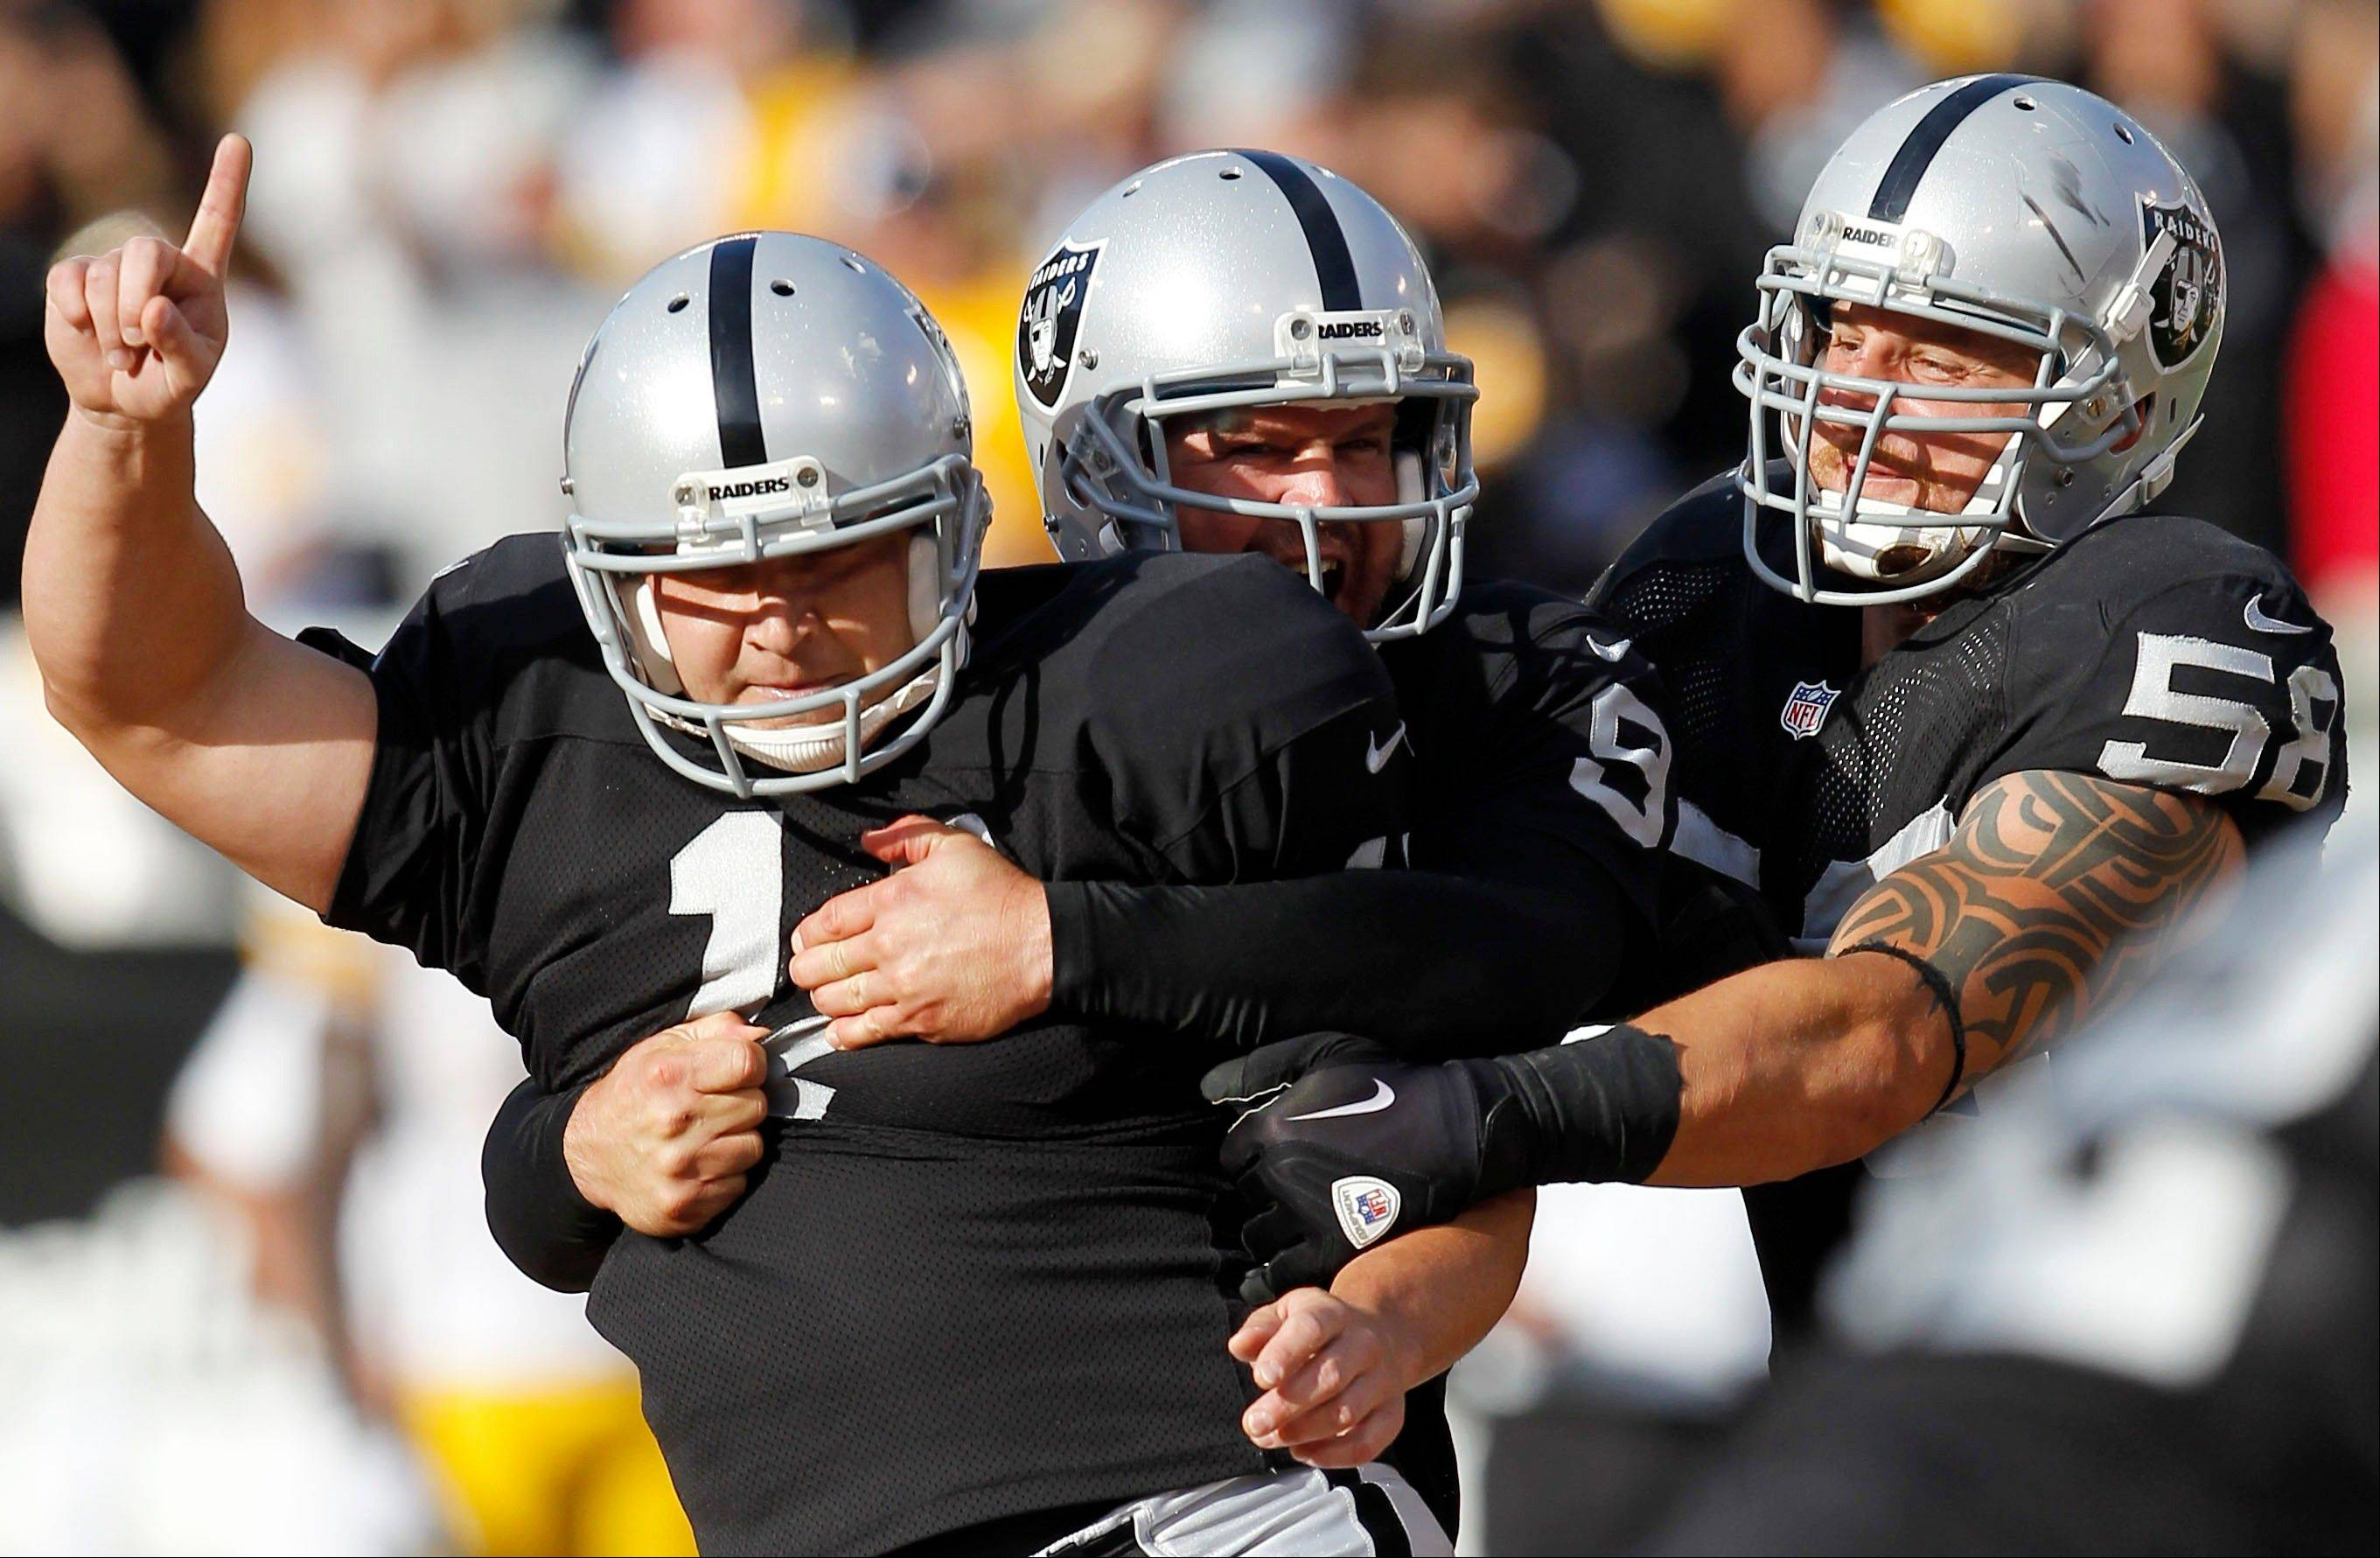 Raiders kicker Sebastian Janikowski (11) celebrates with holder Shane Lechler (9) and Dave Tollefson (58) after Janikowski�s 43-yard field goal to win the game against the Pittsburgh Steelers on Sunday in Oakland, Calif.